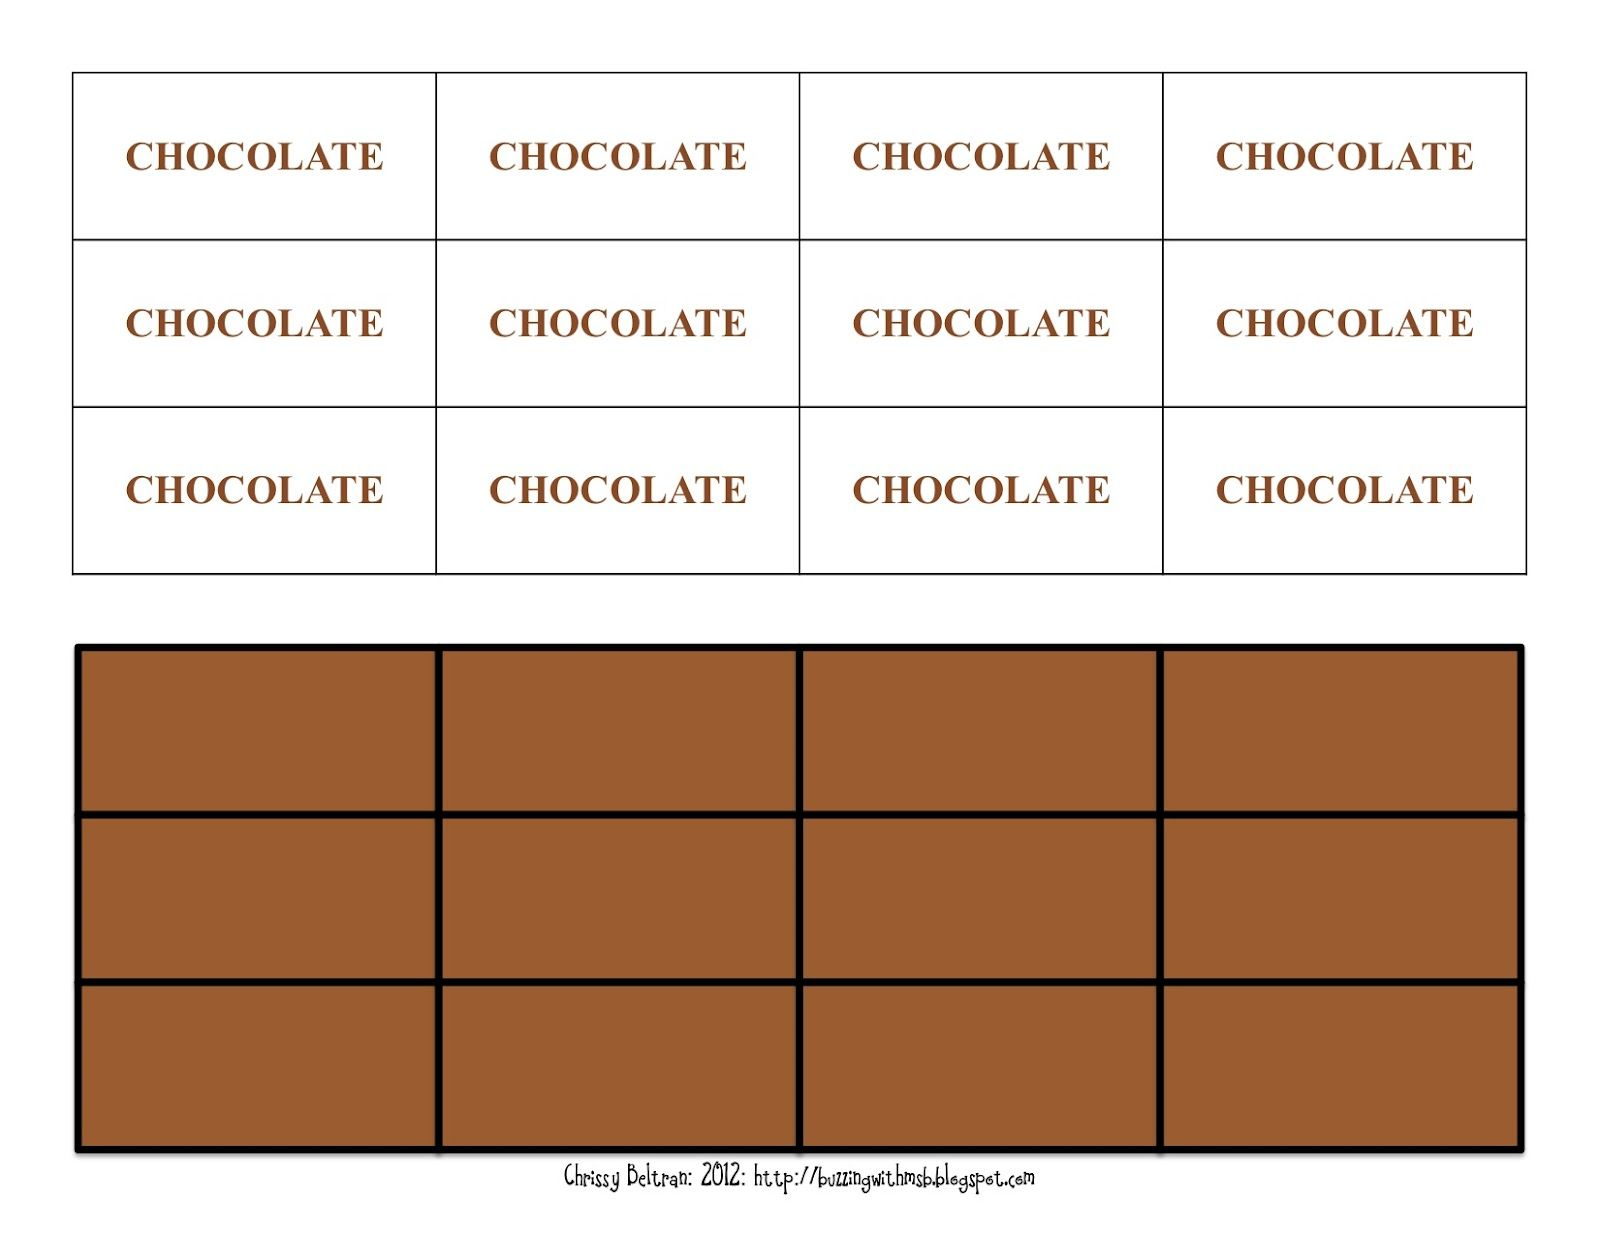 3 6 Free Resources Hershey S Fraction Book Chocolate Pieces